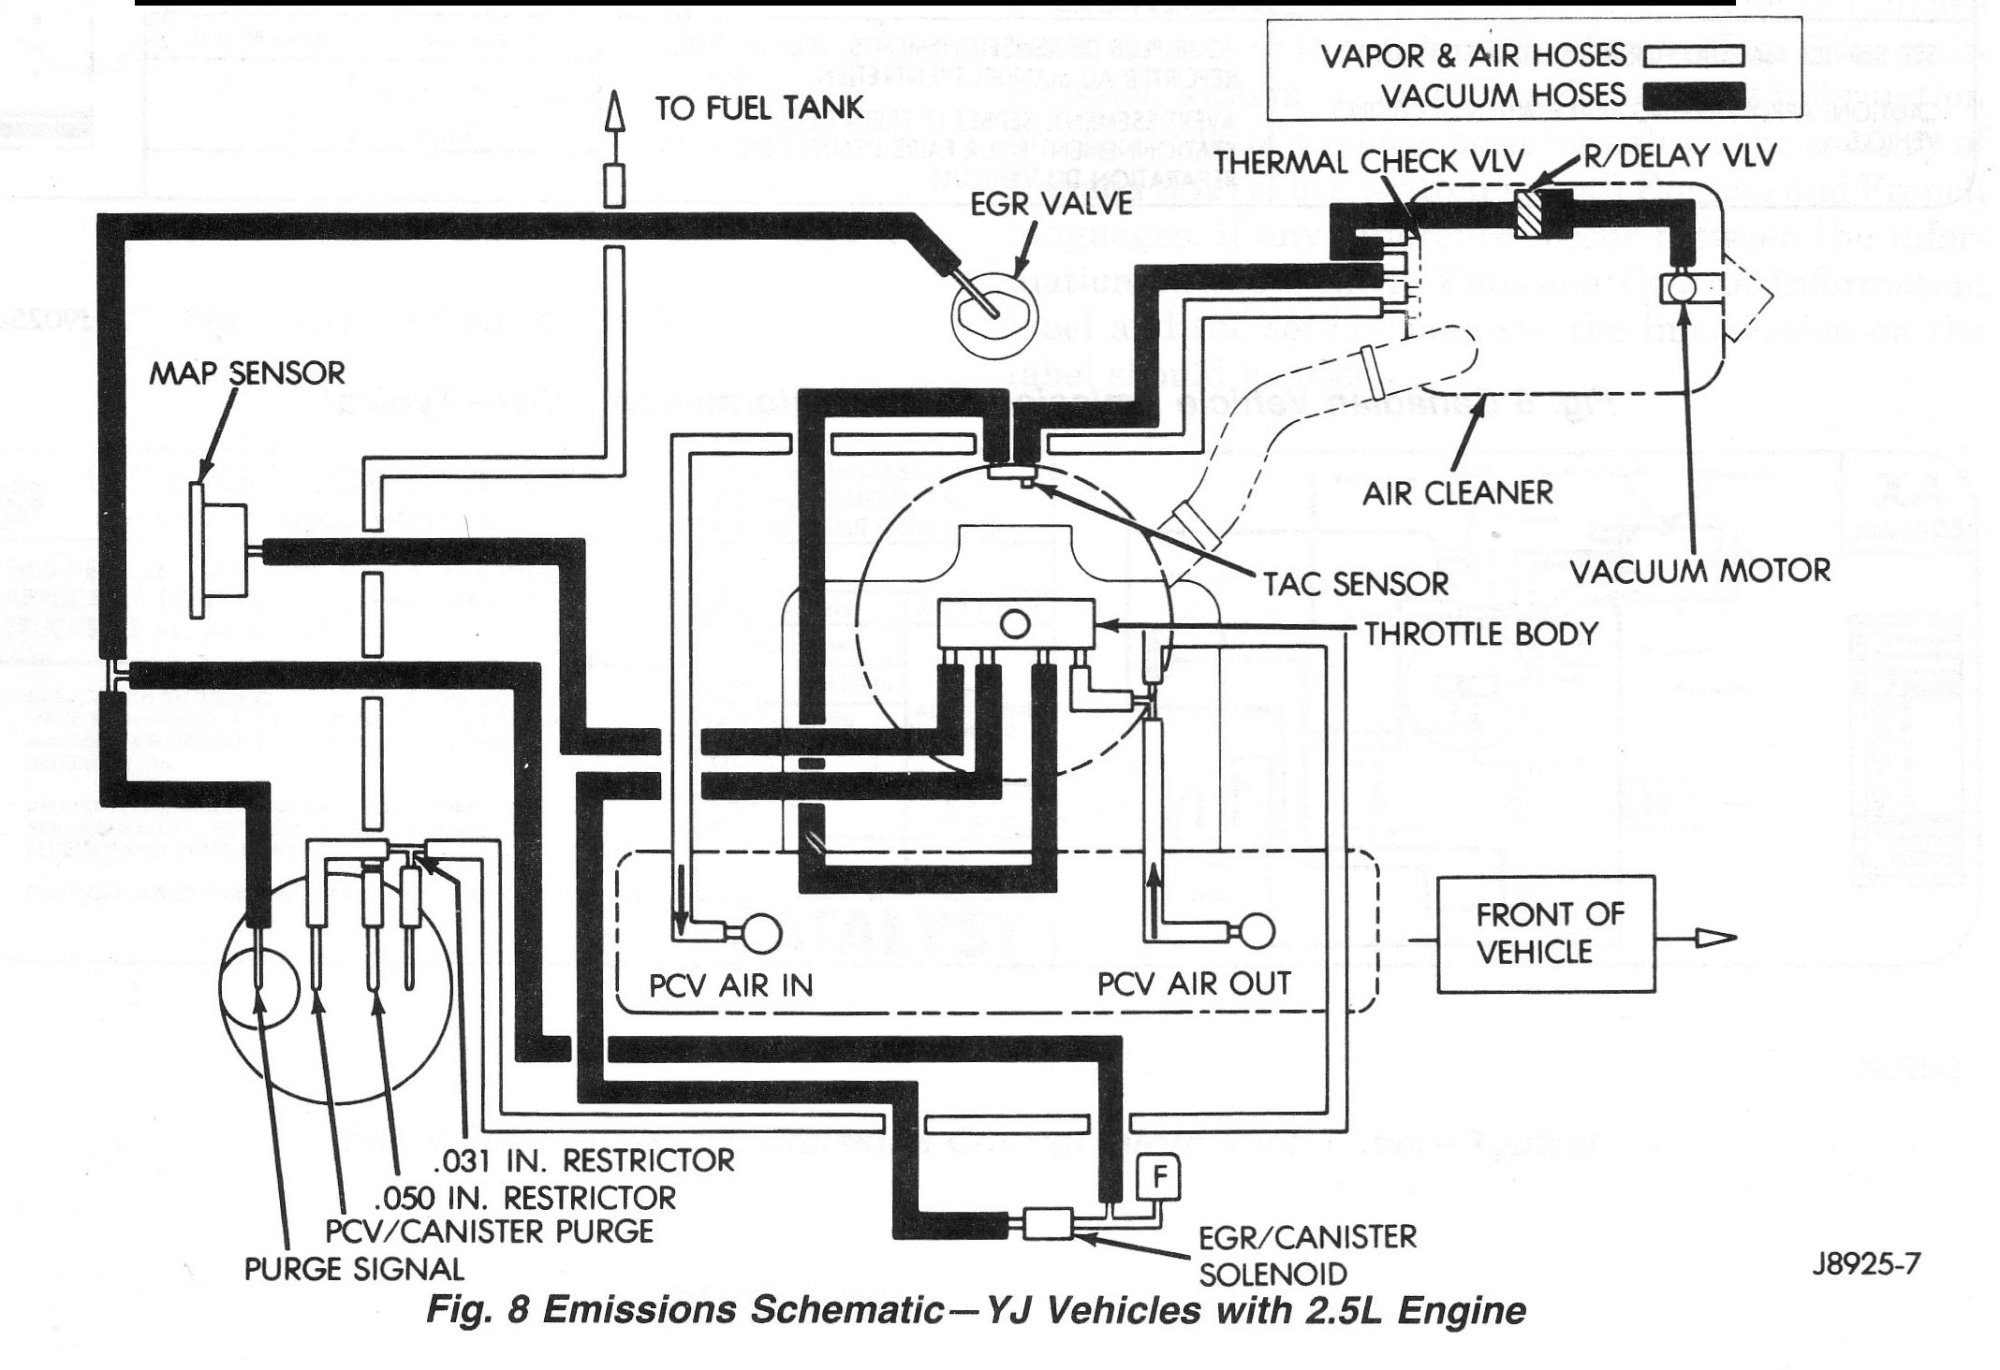 hight resolution of tom oljeep collins fsj vacuum layout page vacuum map diagram of this jeep here is a diagram for your 90 jeep